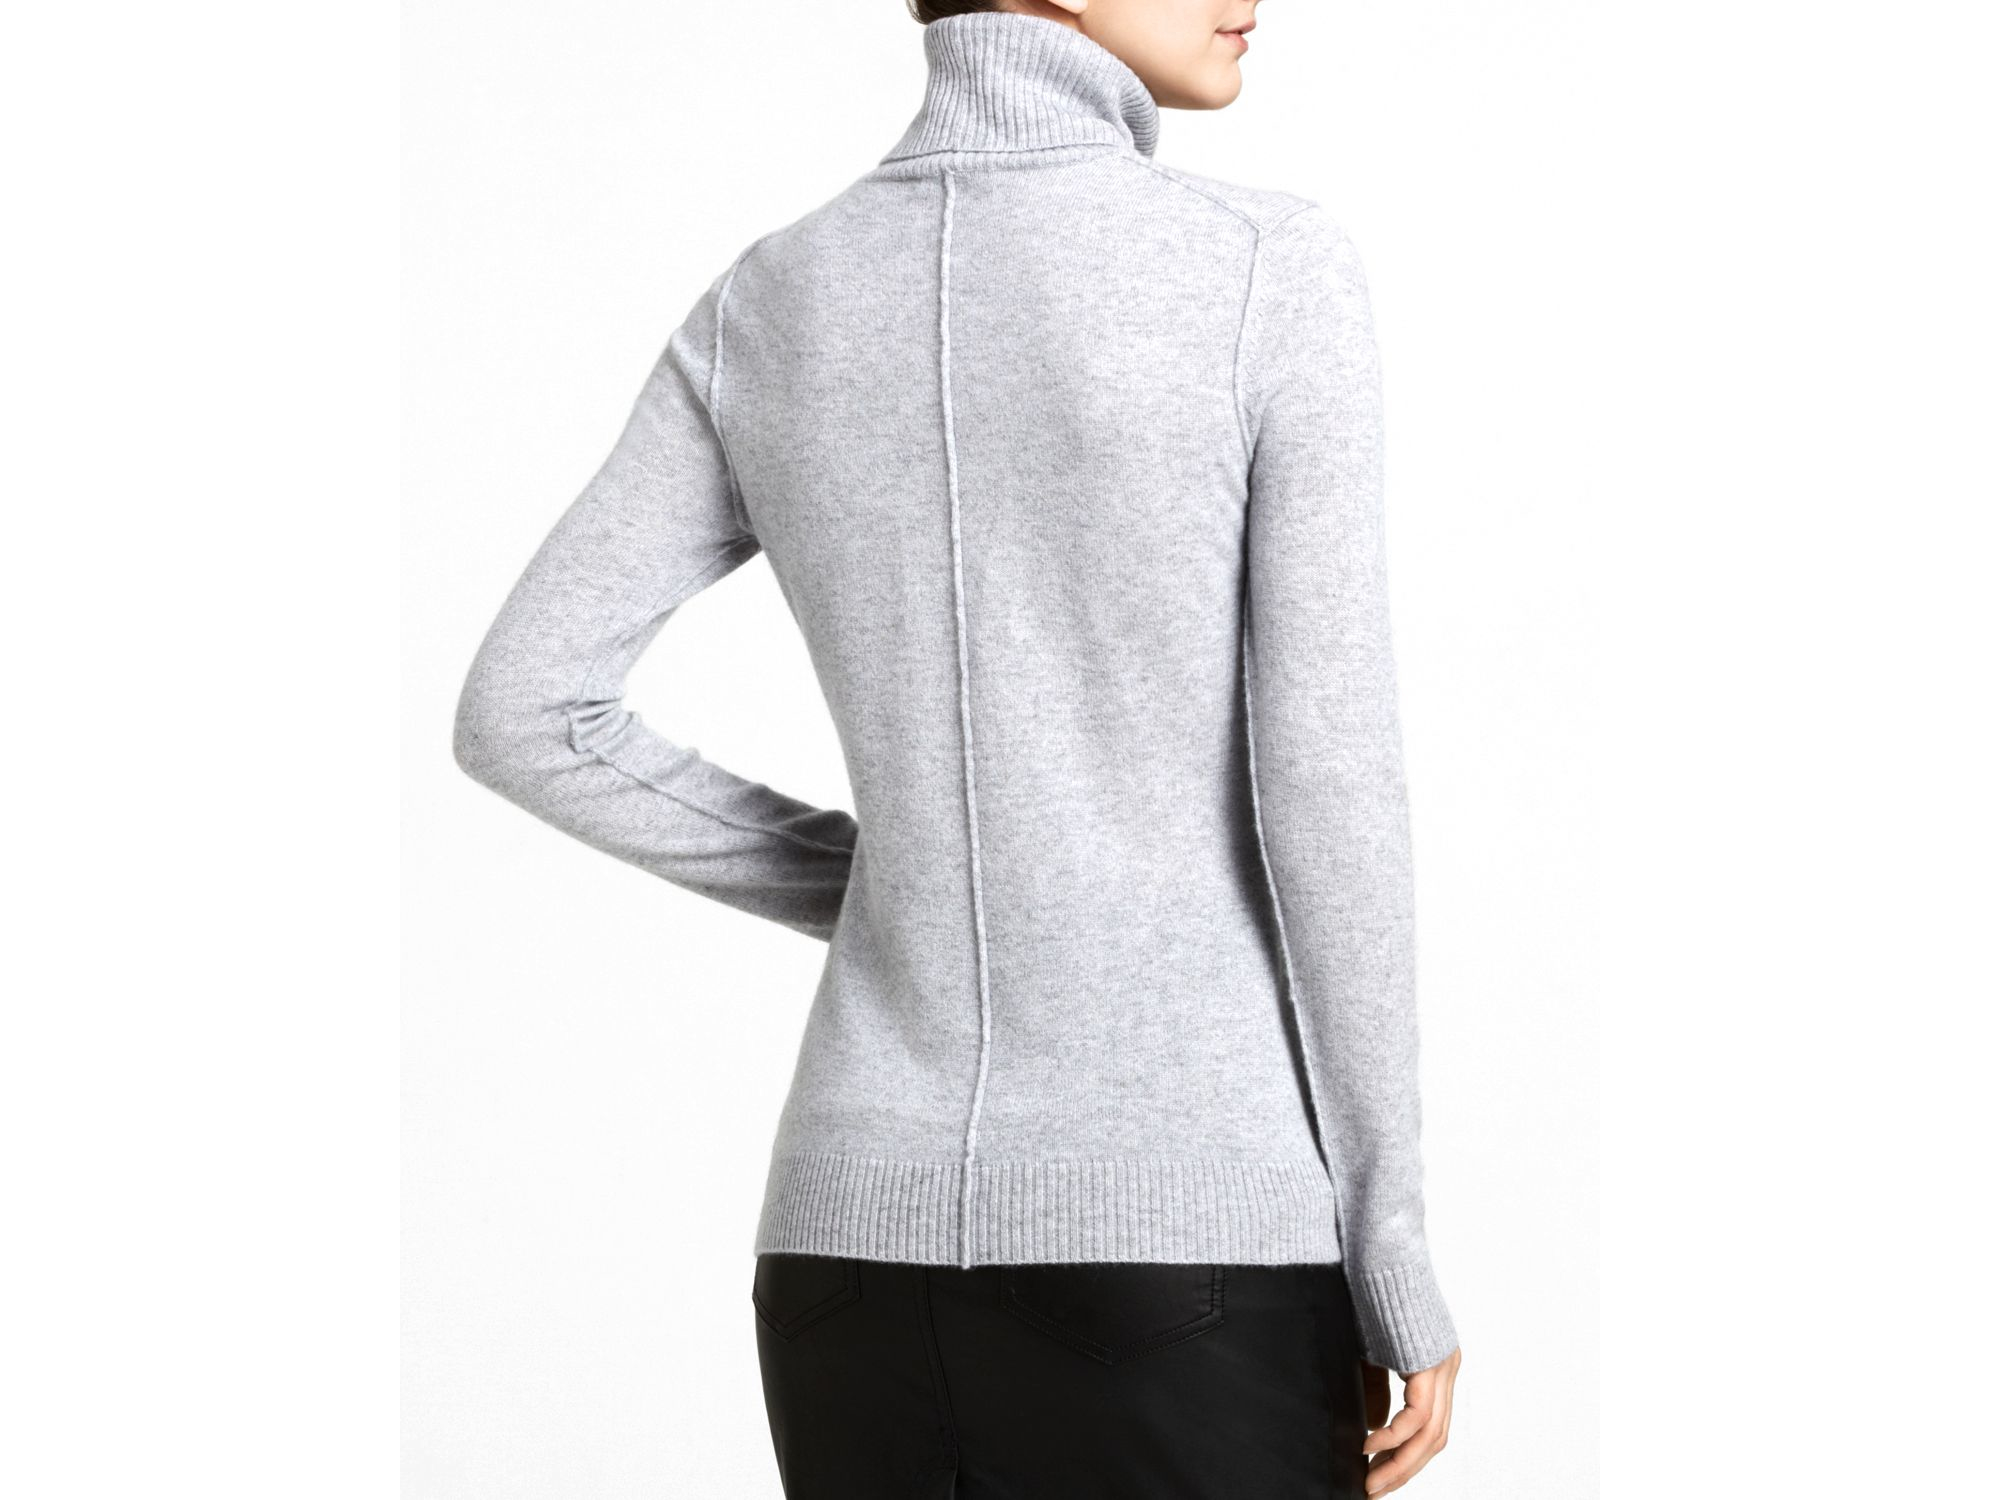 Aqua Cashmere Turtleneck Sweater in Gray | Lyst